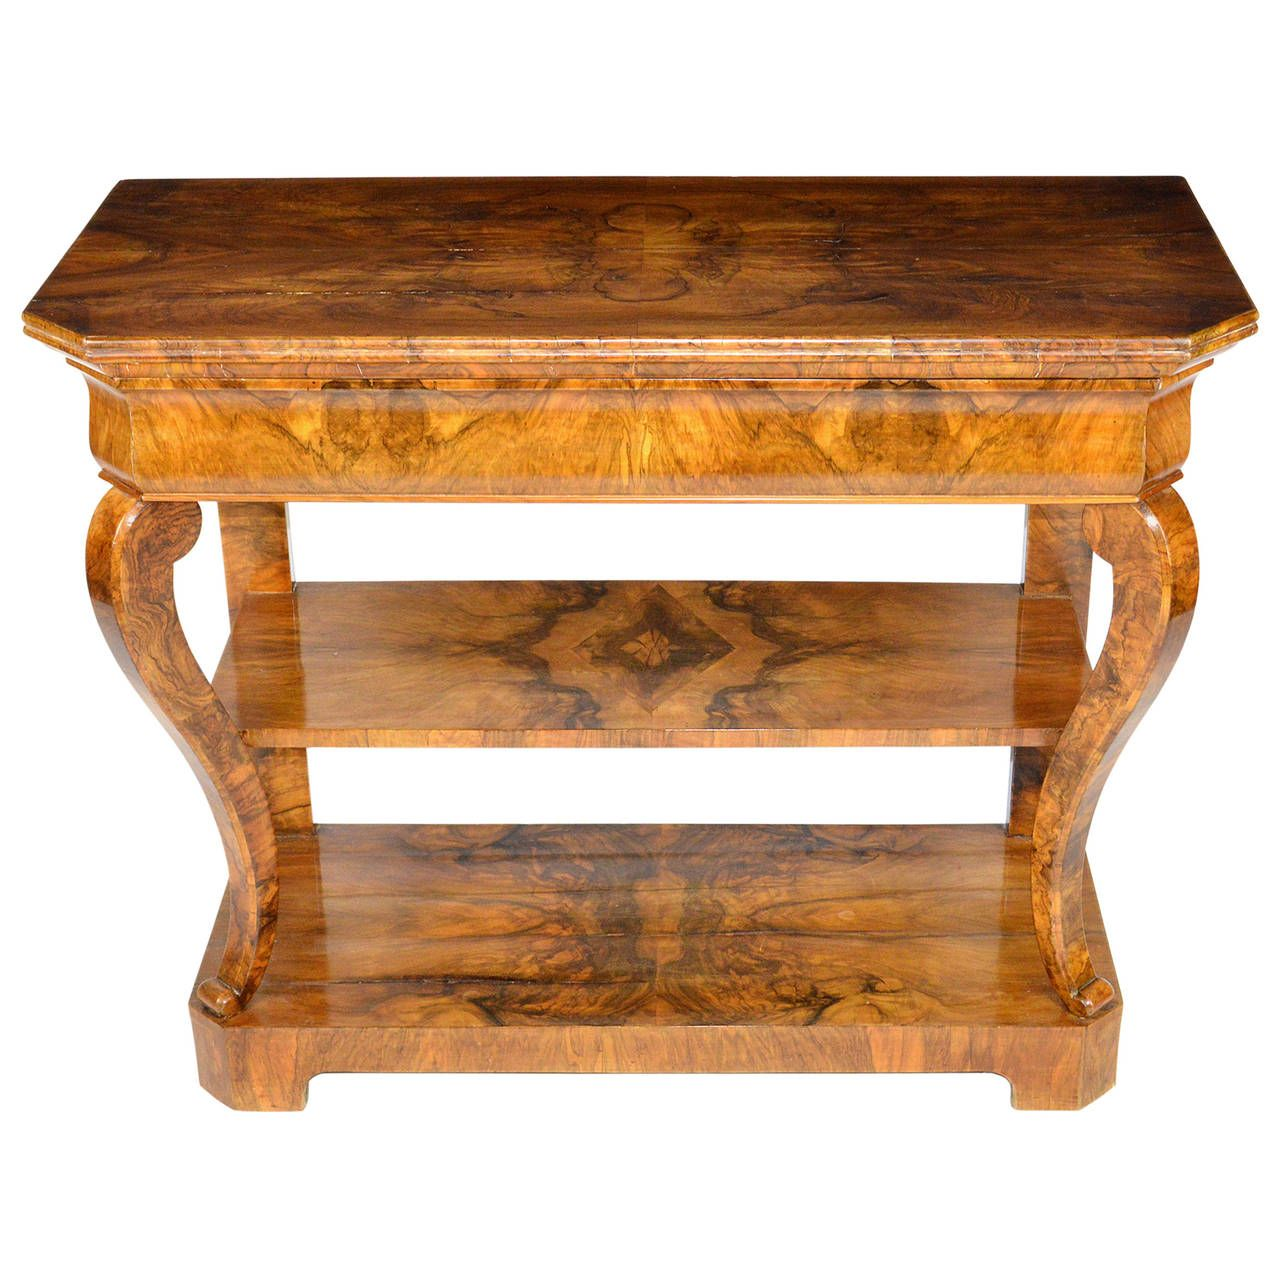 19th Century Biedermeier Burl Wood Veneered Console Table From A Unique Collection Of Antique And